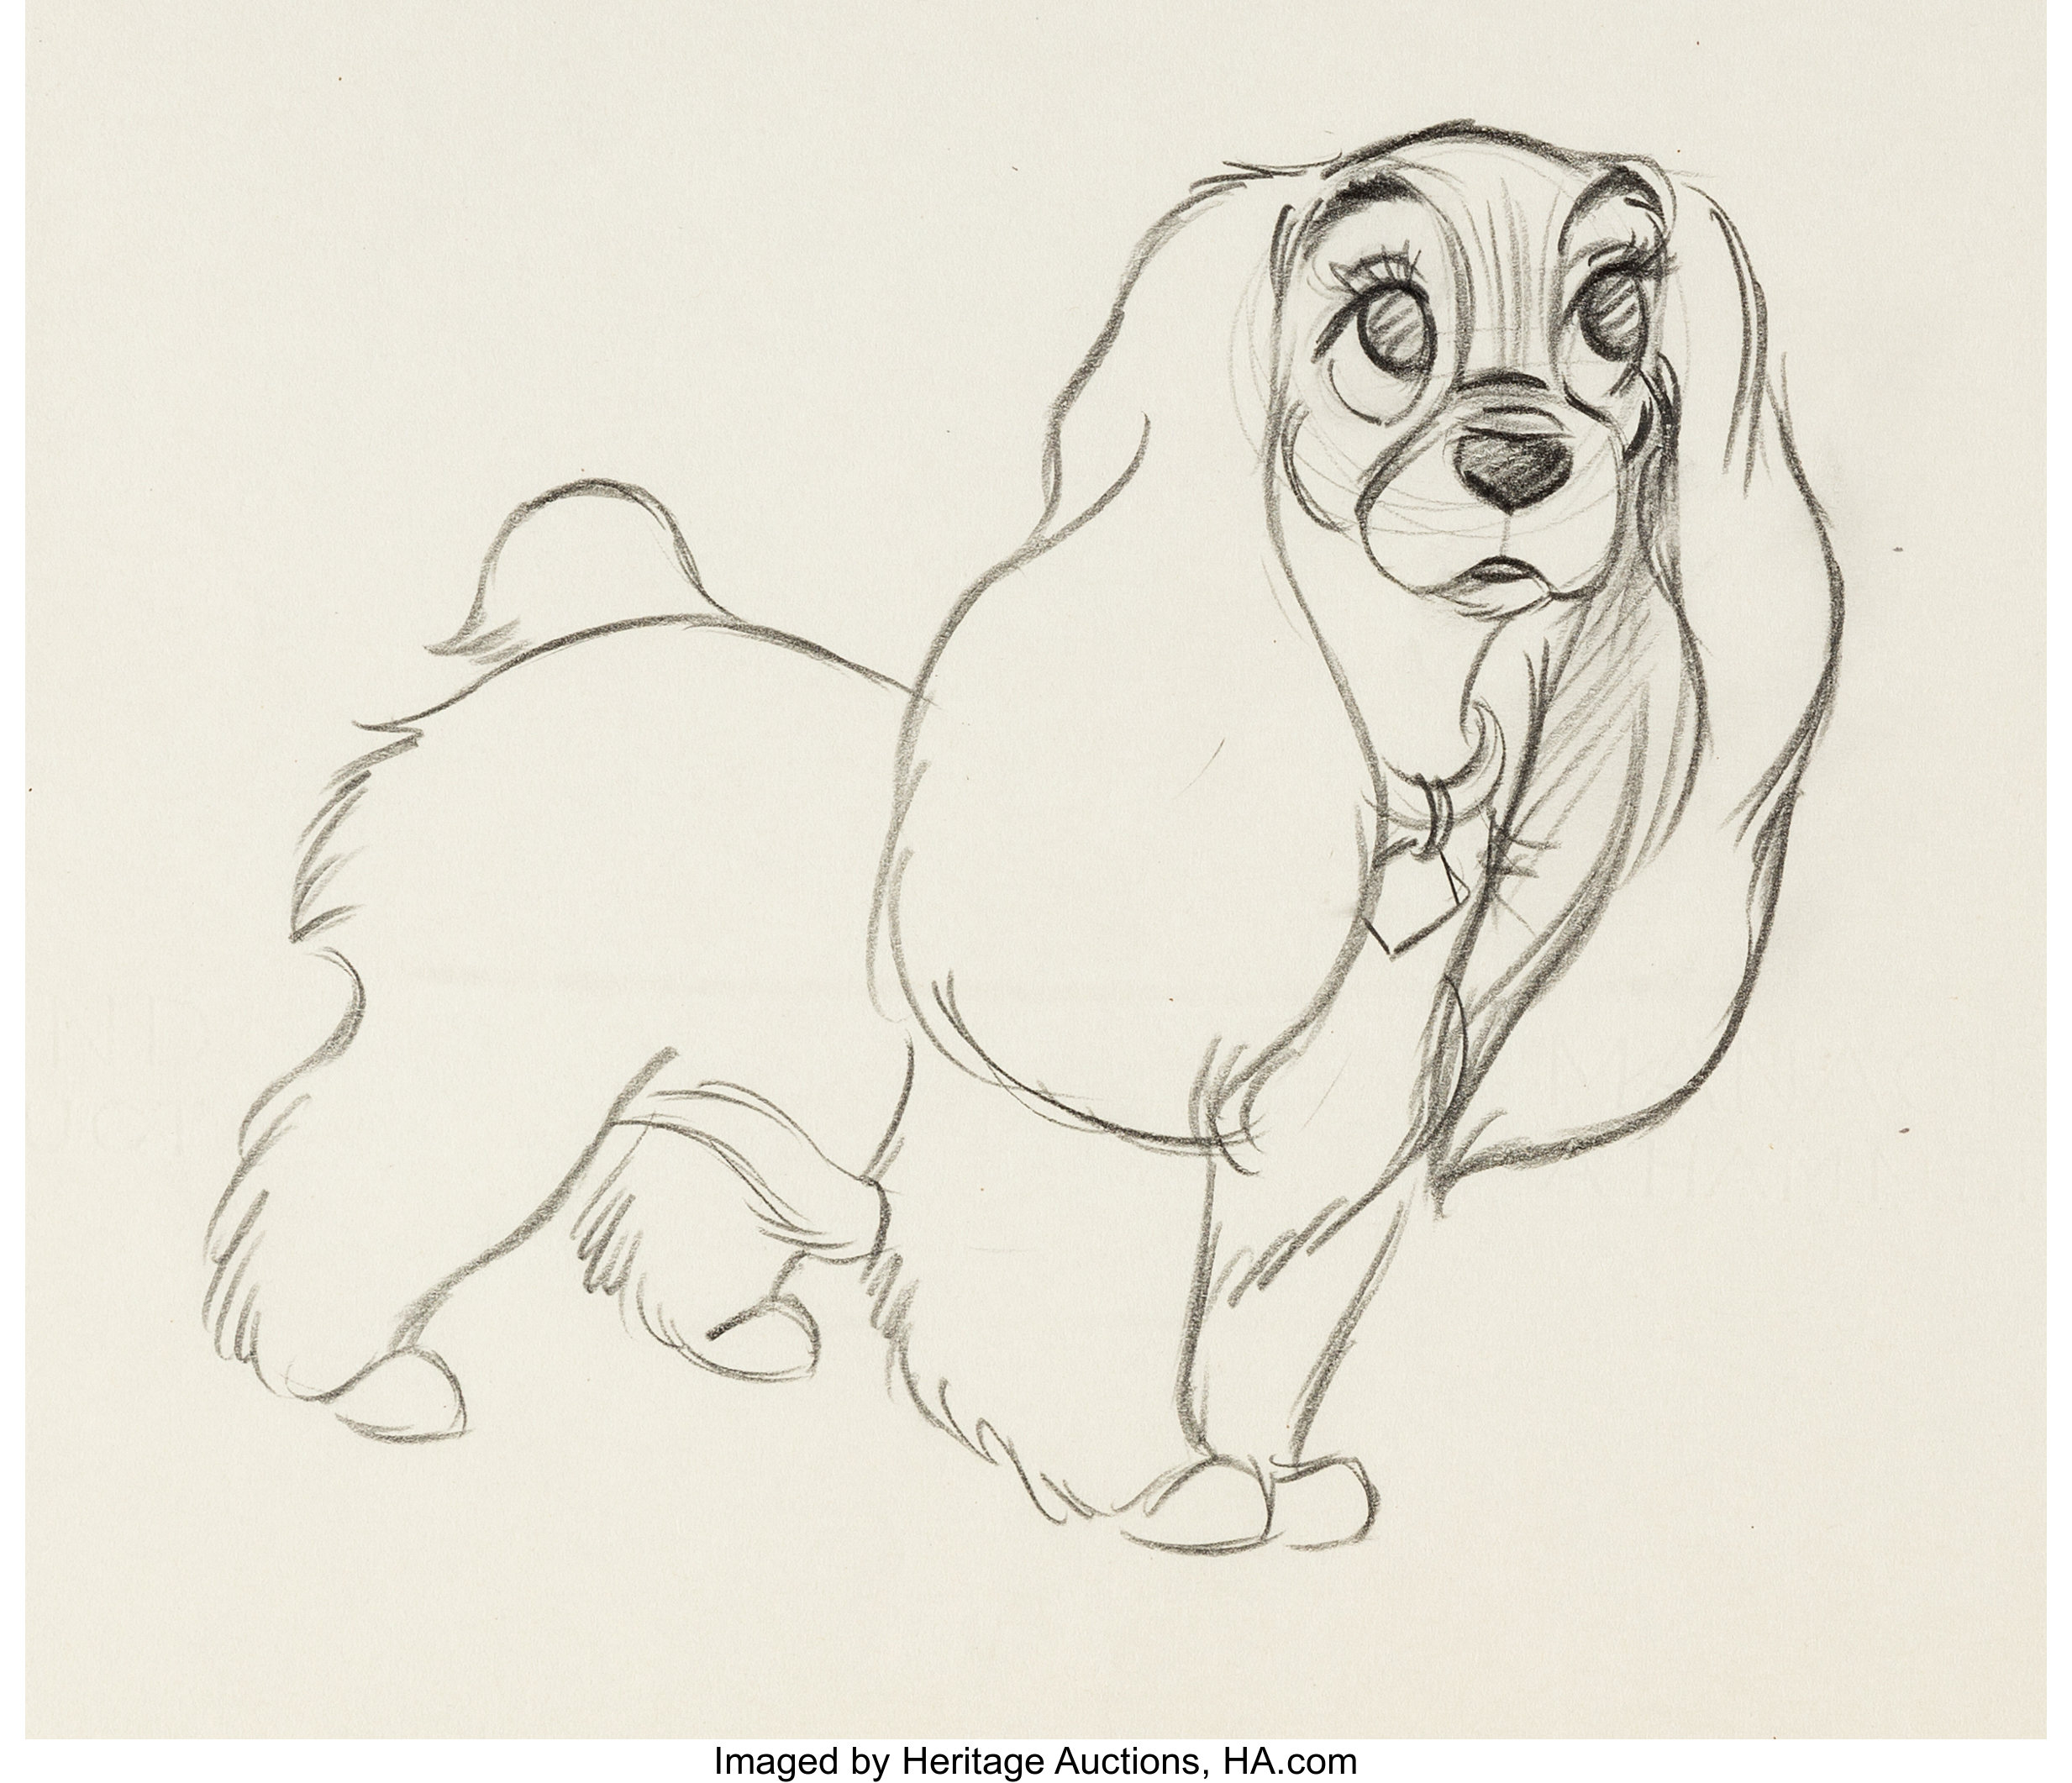 Lady And The Tramp Animation Production Drawing Walt Disney Lot 63690 Heritage Auctions